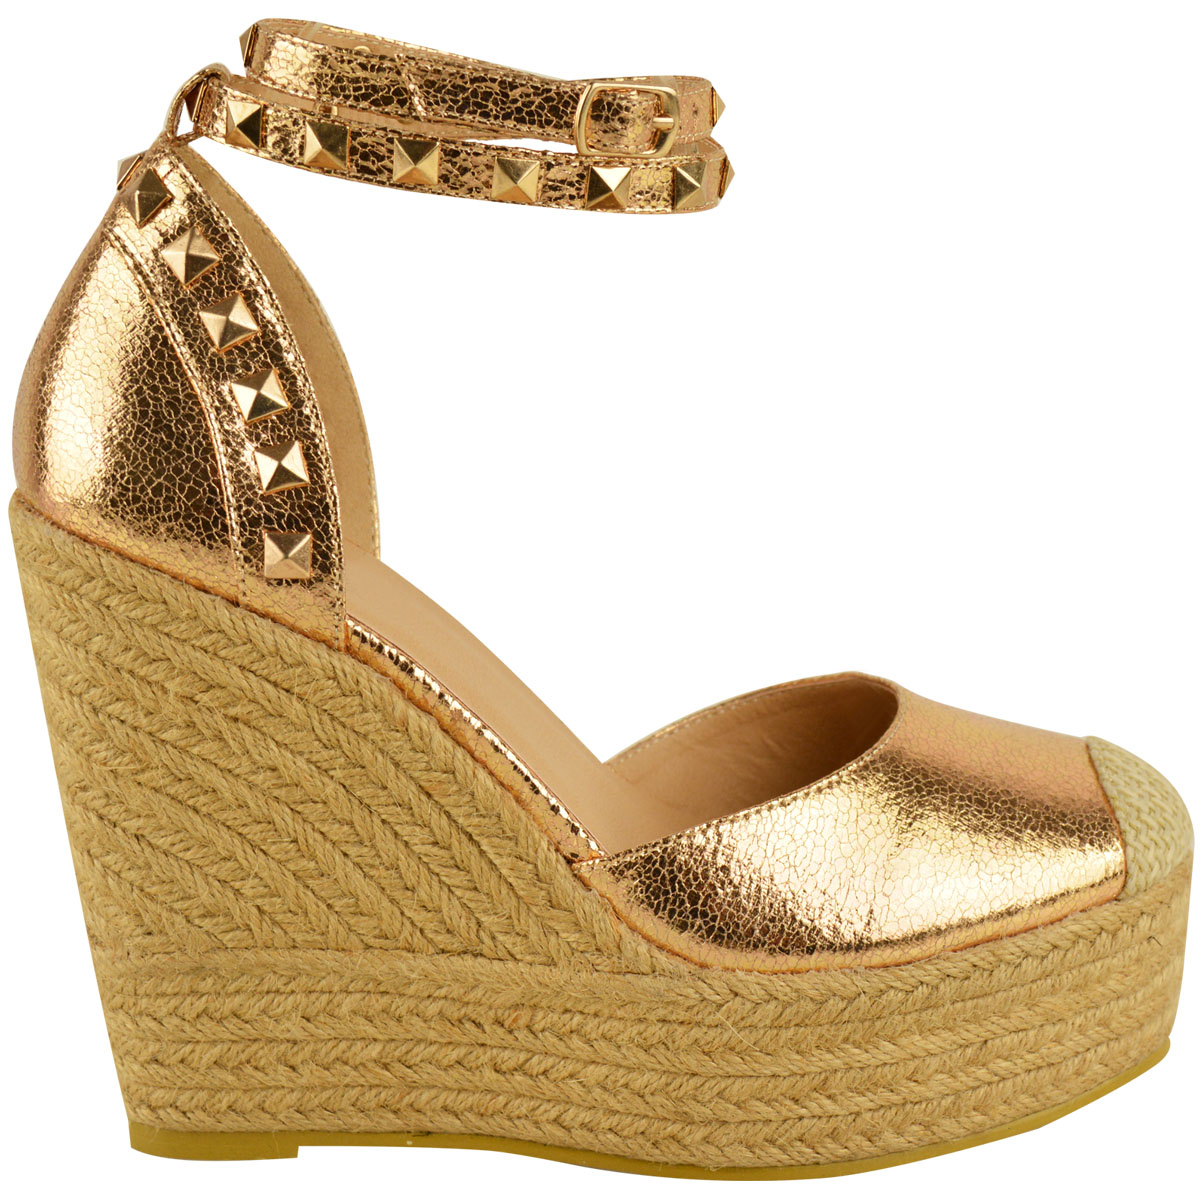 New-Womens-Stud-Espadrille-Wedge-Summer-Sandal-Ladies-Rose-Gold-Party-Shoes-Size thumbnail 23